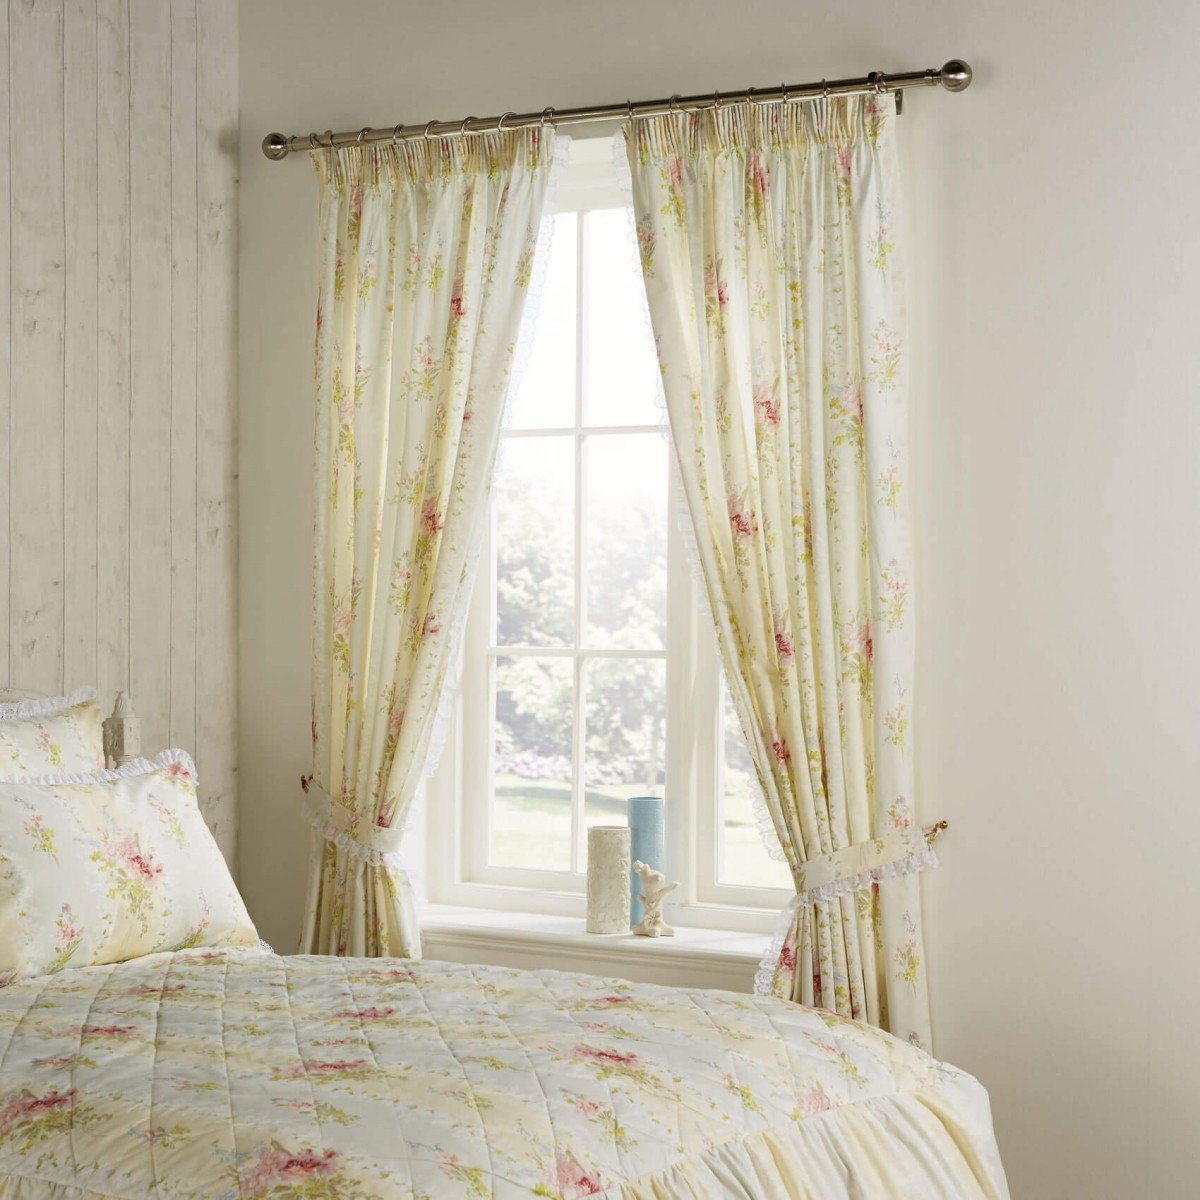 Vantona Country Marielle Pencil Pleat Curtains and Tiebacks - Cream - 66 x 72